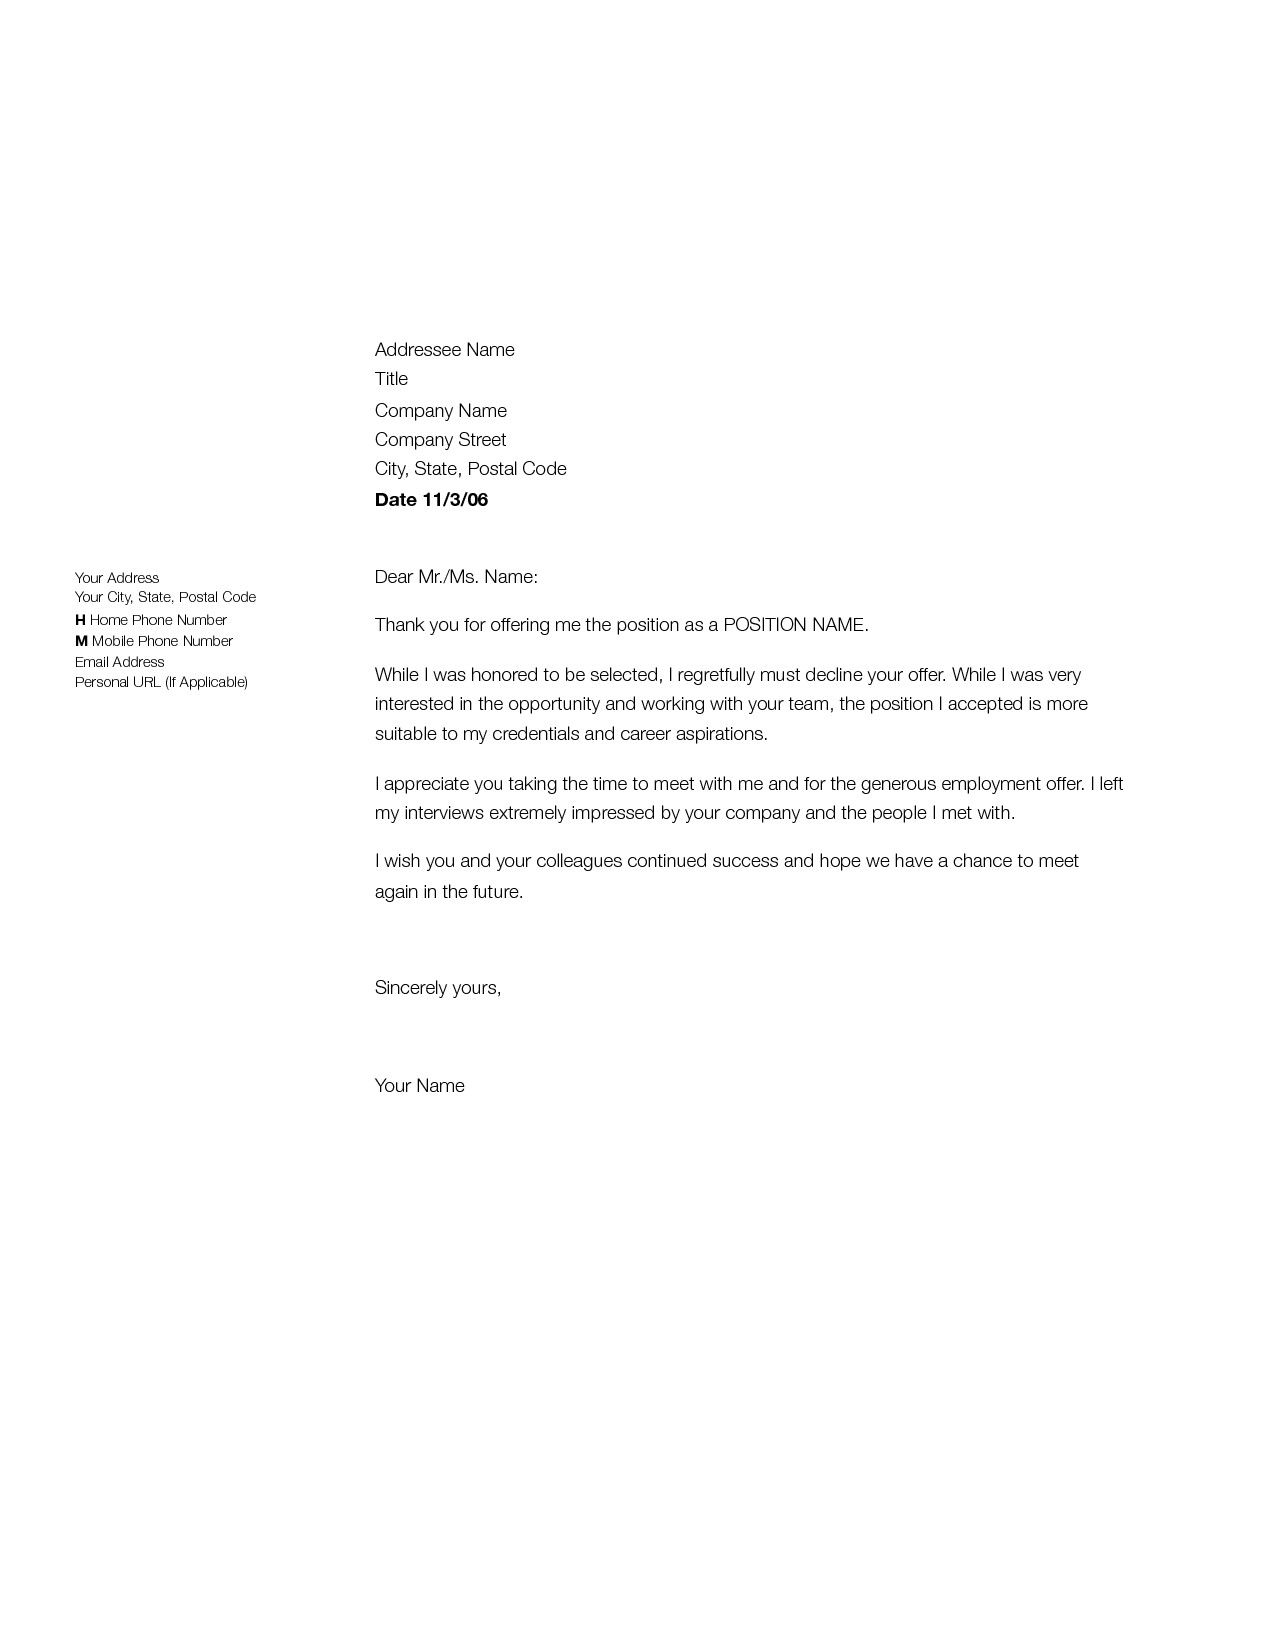 Download Fresh Sample Letter To Turn Down A Job Offer At Https Gprime Us Sample Letter To Turn Down A Job Offer Job Rejection Offer And Acceptance Job Letter